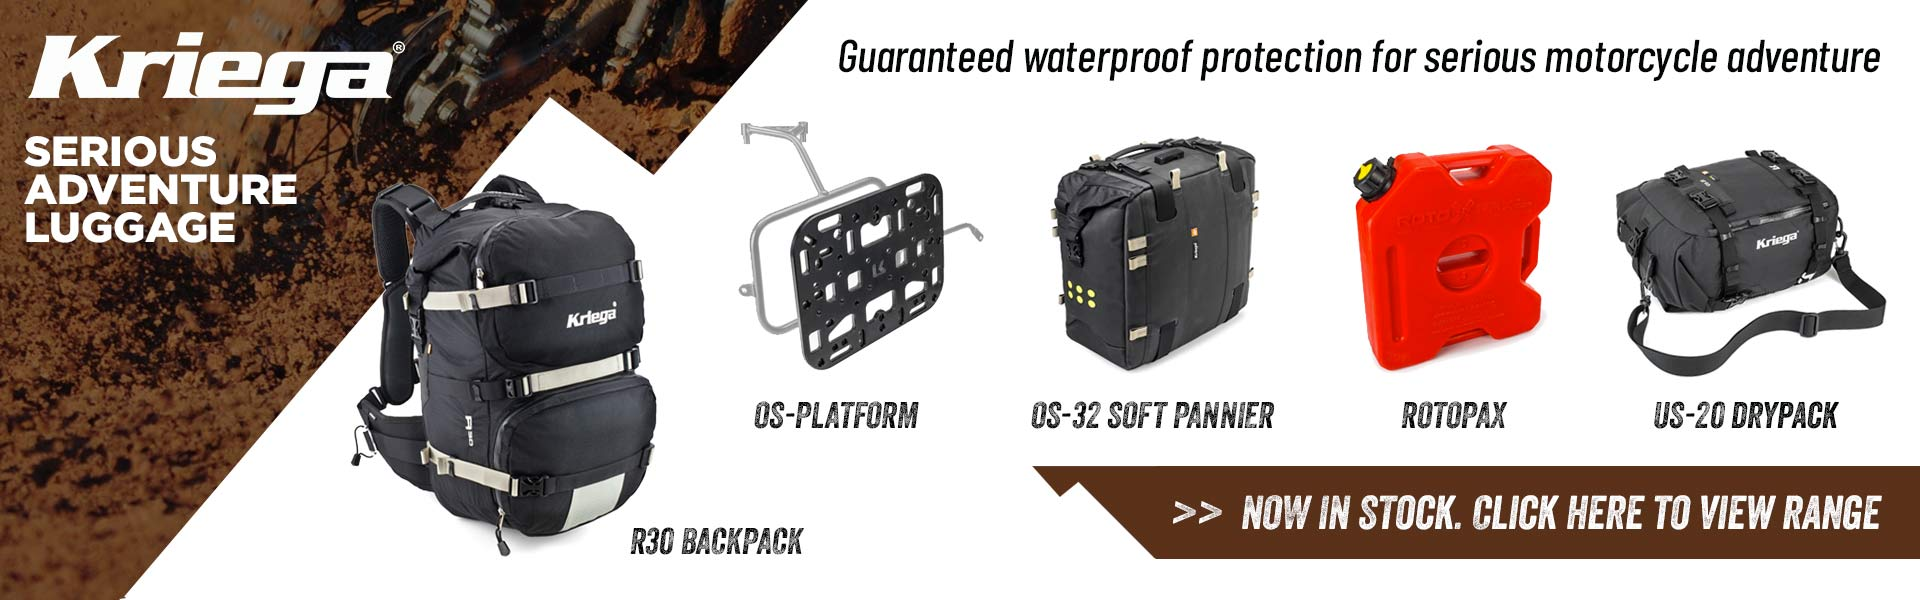 Kriega waterproof protection